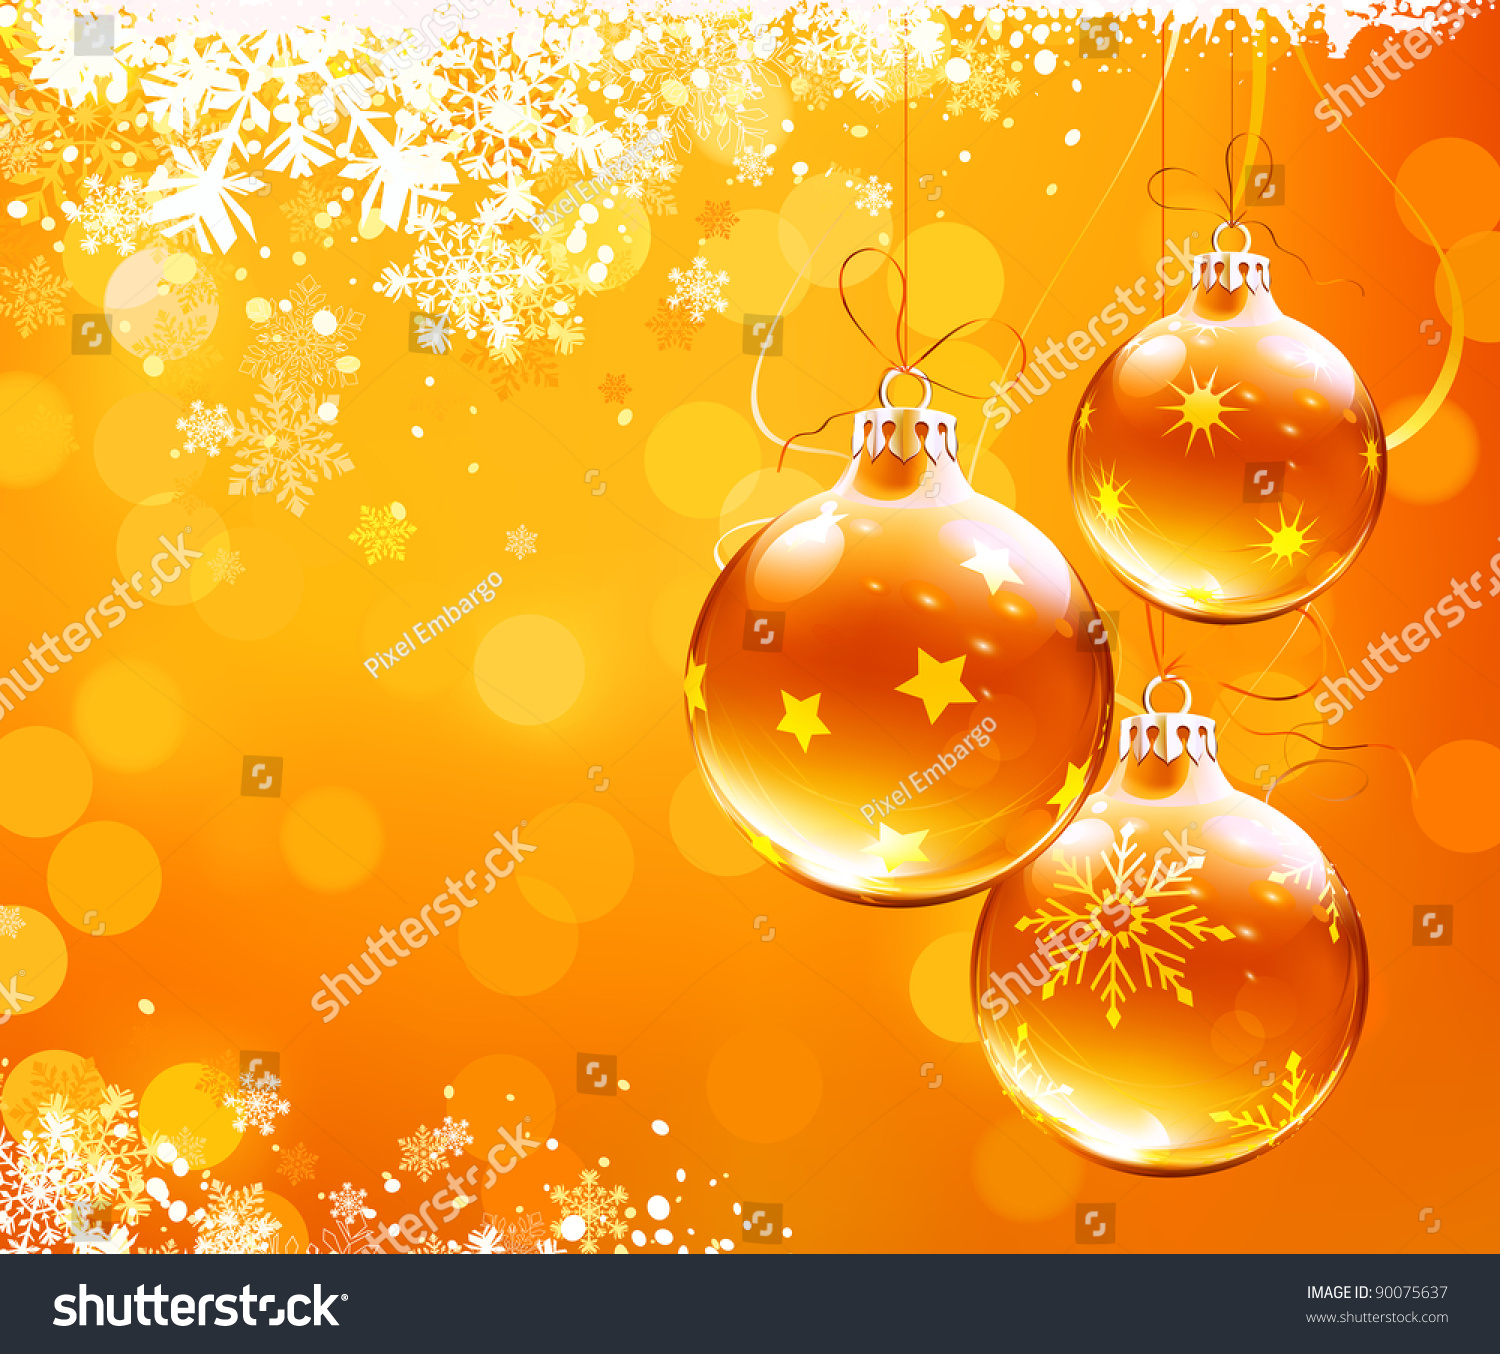 Christmas Decorations With Orange: Vector Illustration Orange Christmas Abstract Background